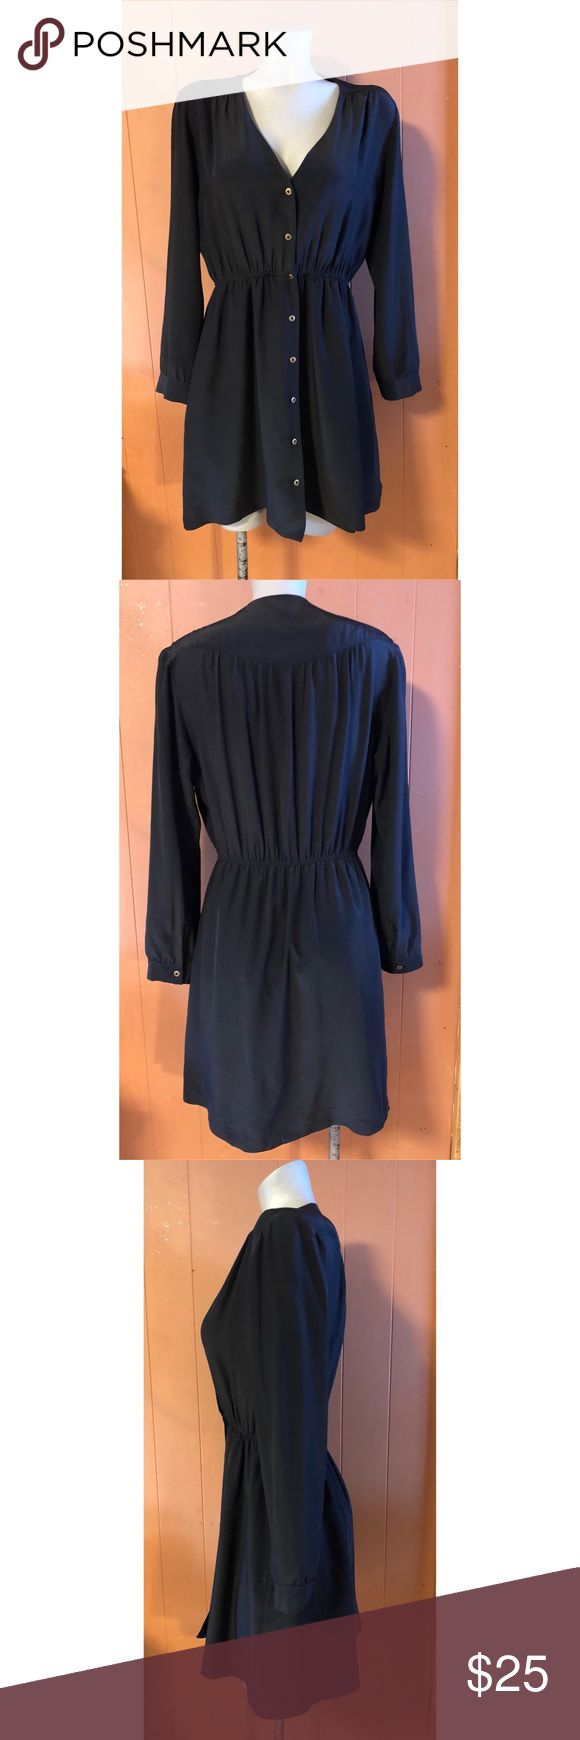 Anthropologie MYNE Black Silk Shirt Dress, size 6 Anthropologie MYNE Black Silk Shirt Dress, size 6. This 100% silk dress has a v-neck and buttons down the front. It has an elastic waist for a flattering fit and feminine figure. The skirt is fully lined in black silk. A perfect dress for any season! (958) Anthropologie Dresses